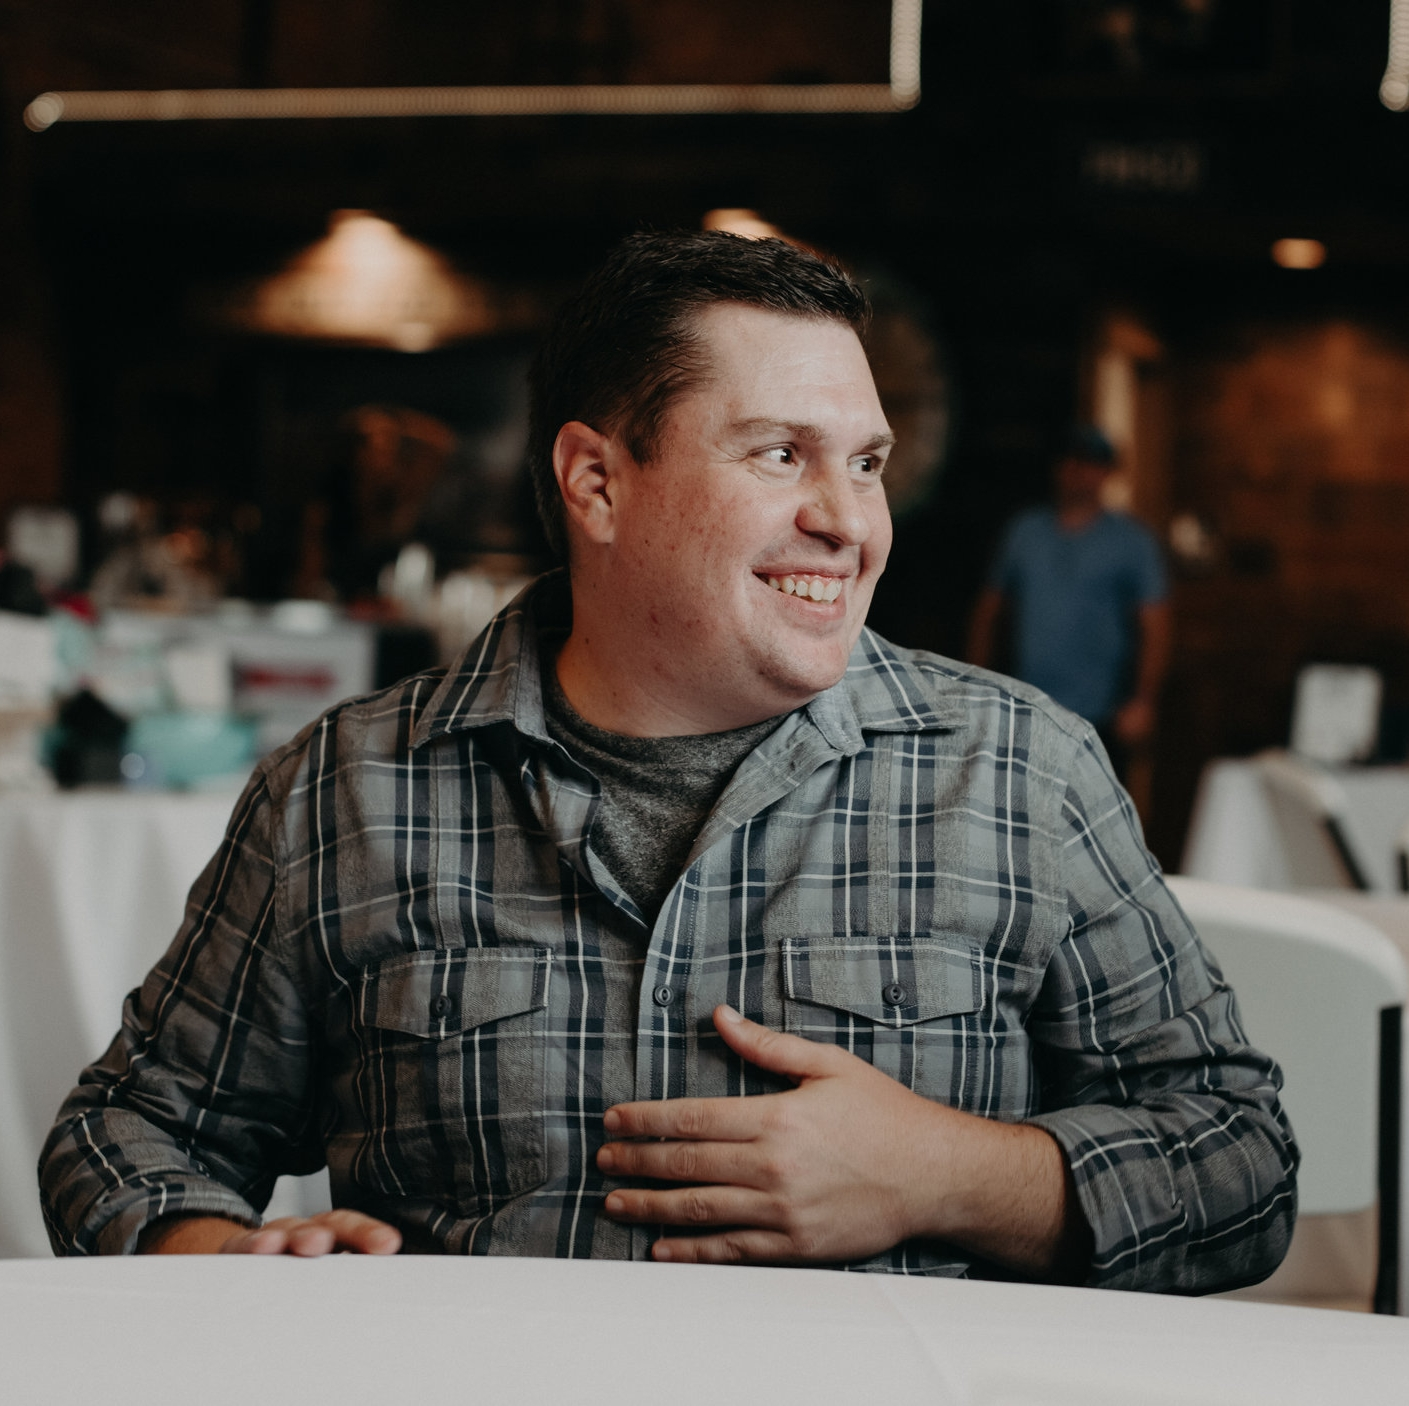 Mark Schremmer – Communications Director   Mark has been a professional journalist for 17 years, working as an editor and reporter. He currently works for Land Line Magazine, and as a freelance writer for The Kansas City Star. Mark's focus is to provide information about VetLinks.org events and services to local and national media.